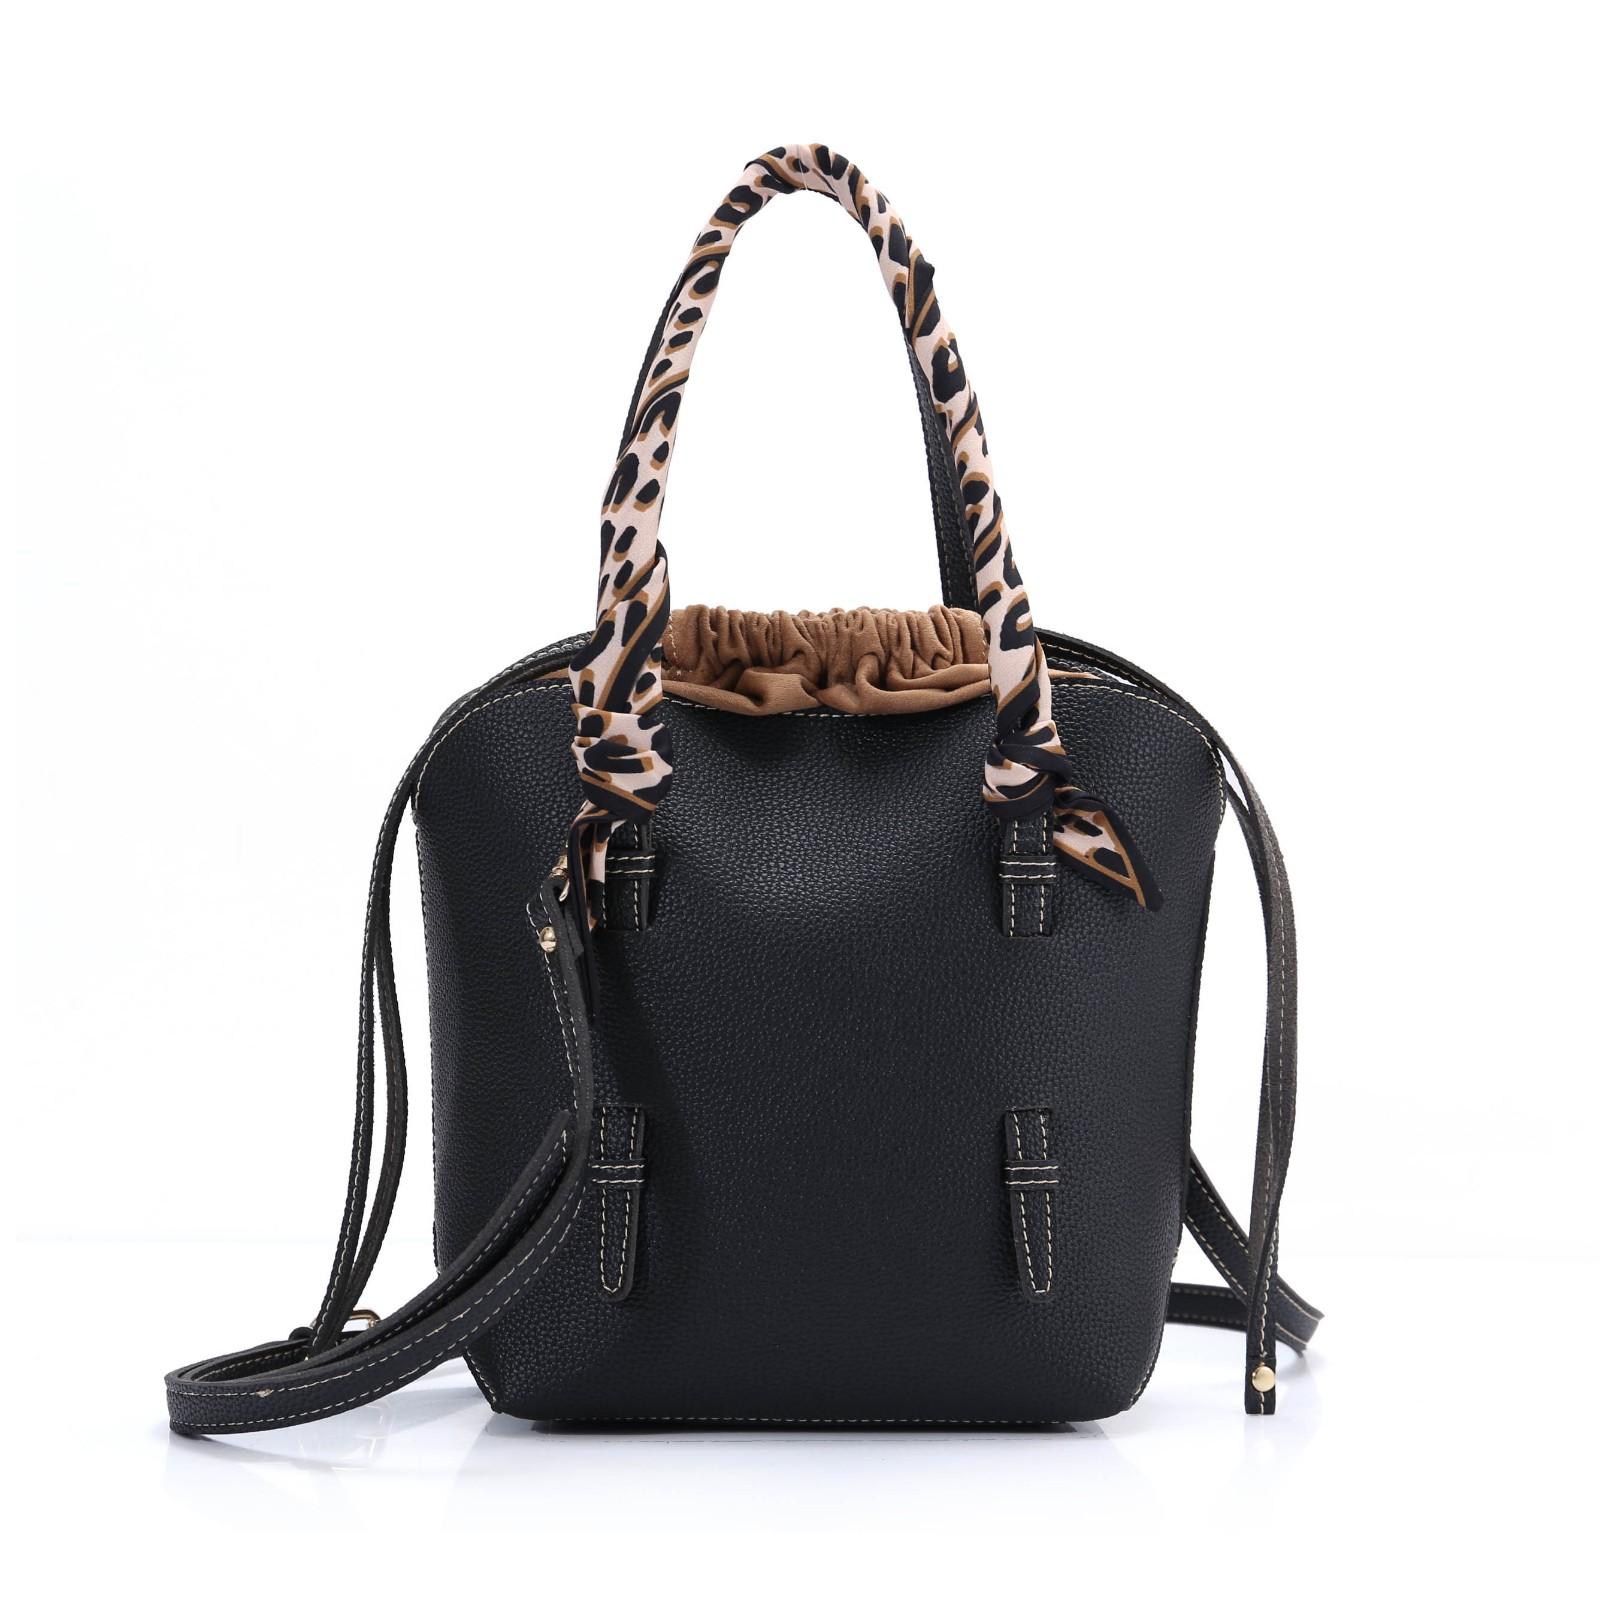 ANGEDANLIA box woven leather bag manufacturer for school-5